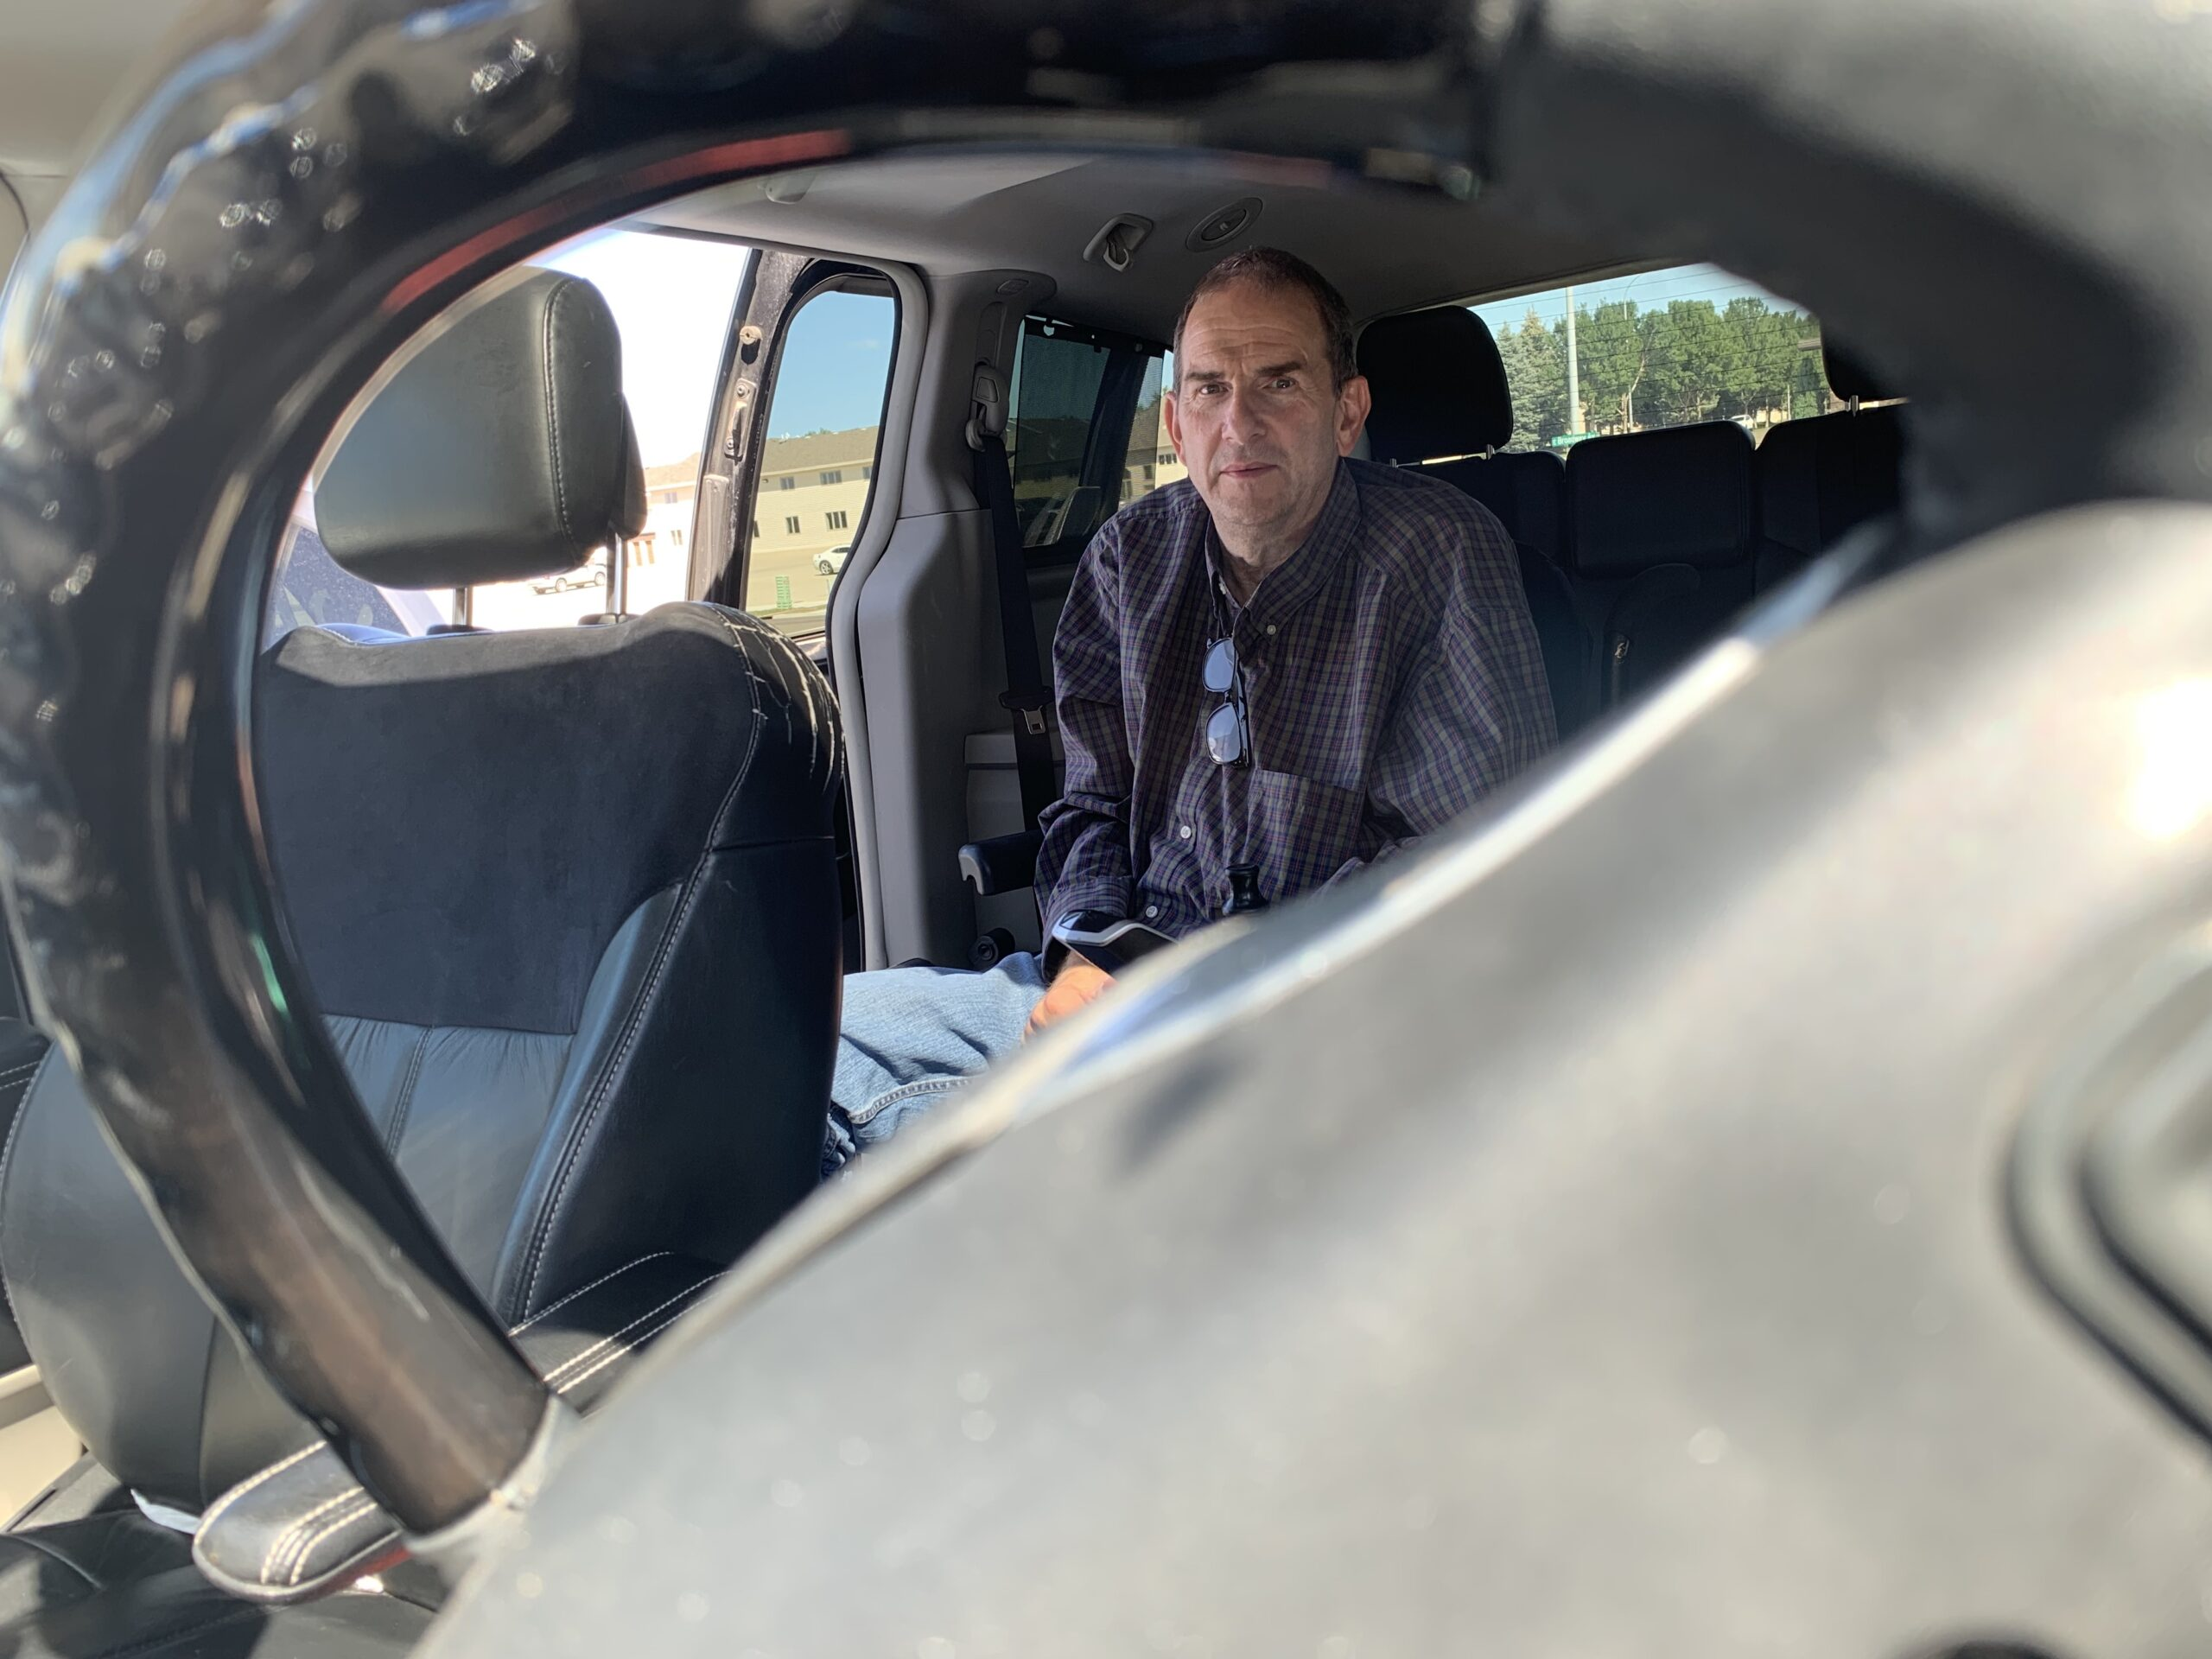 Royce inside his van. The photograph is taken through the steering wheel. He is in the back of the van where he will begin to transfer to the diver's seat.